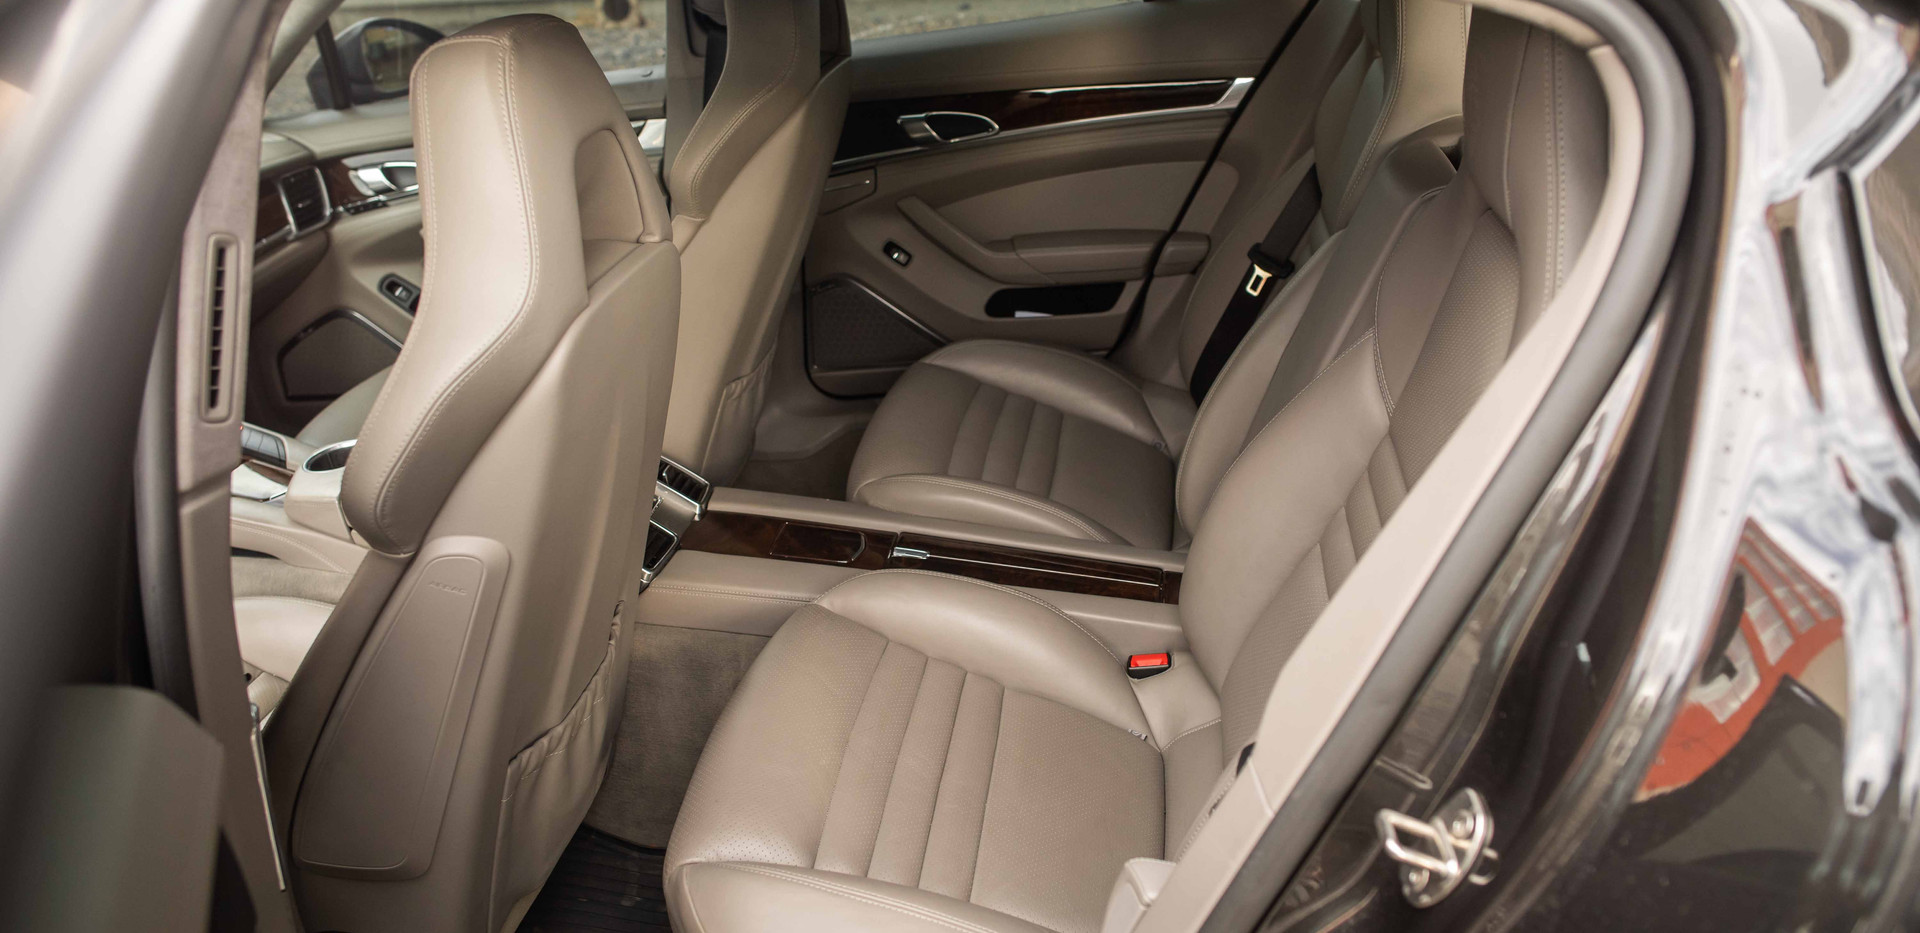 Interior_Rear_Seats_Panamara.jpg